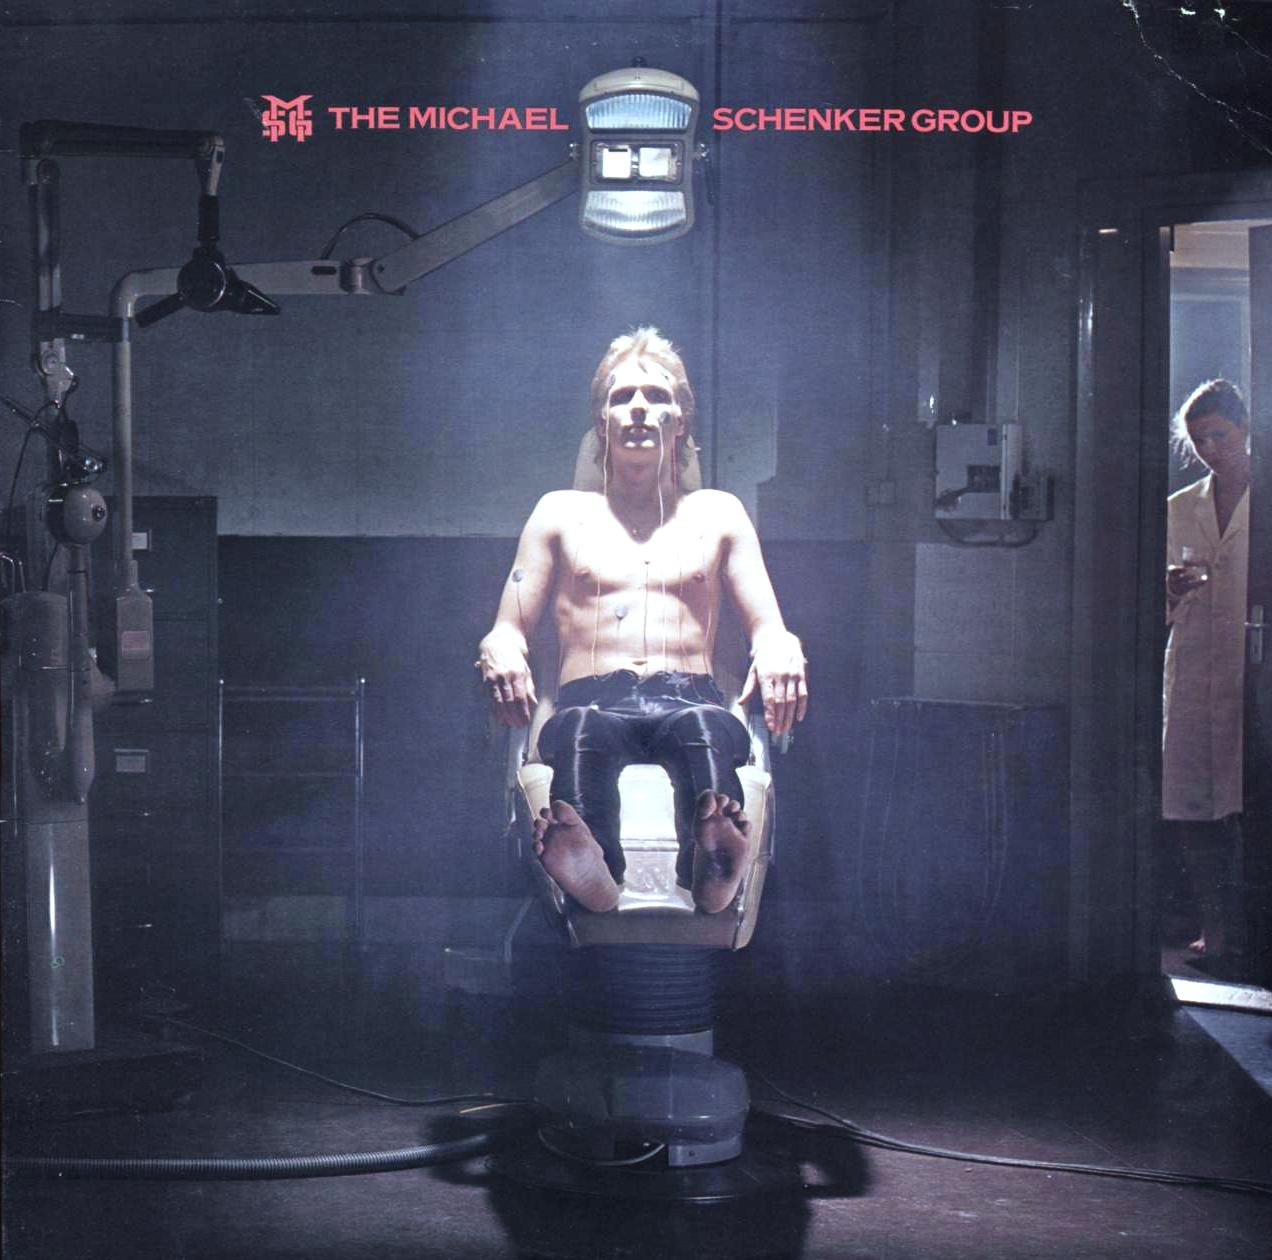 My Music Collection: Michael Schenker Group